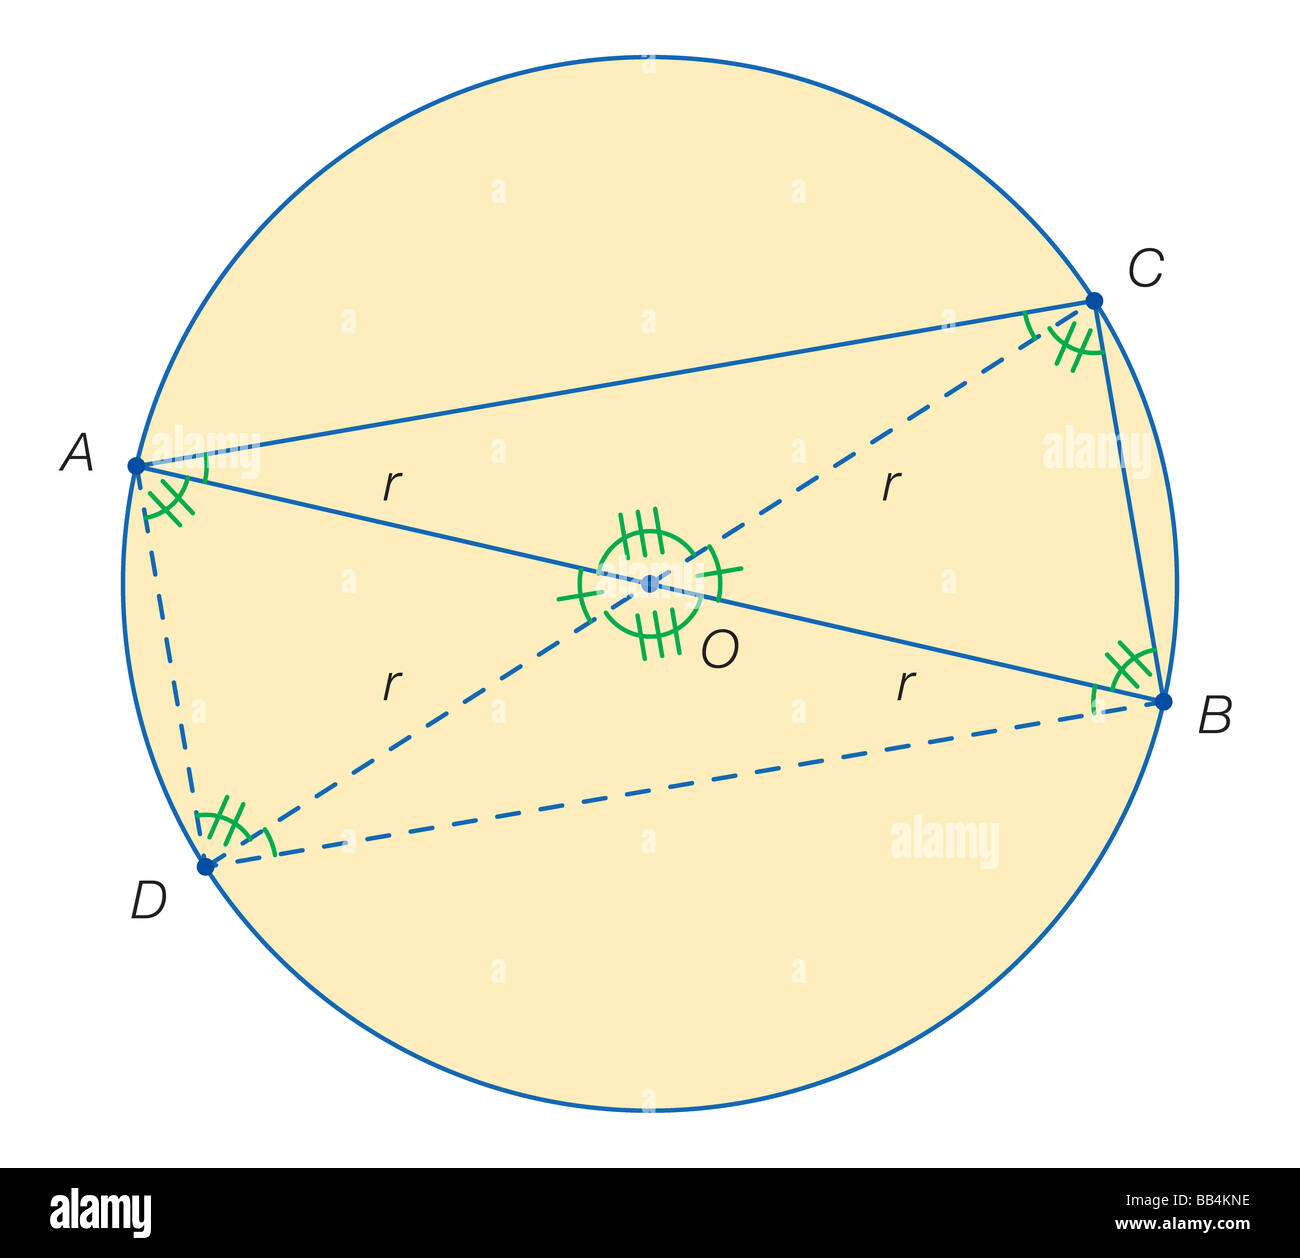 Proposed drawing of Thales' rectangle, a proof that any angle inscribed in a semicircle is a right angle (90°). - Stock Image